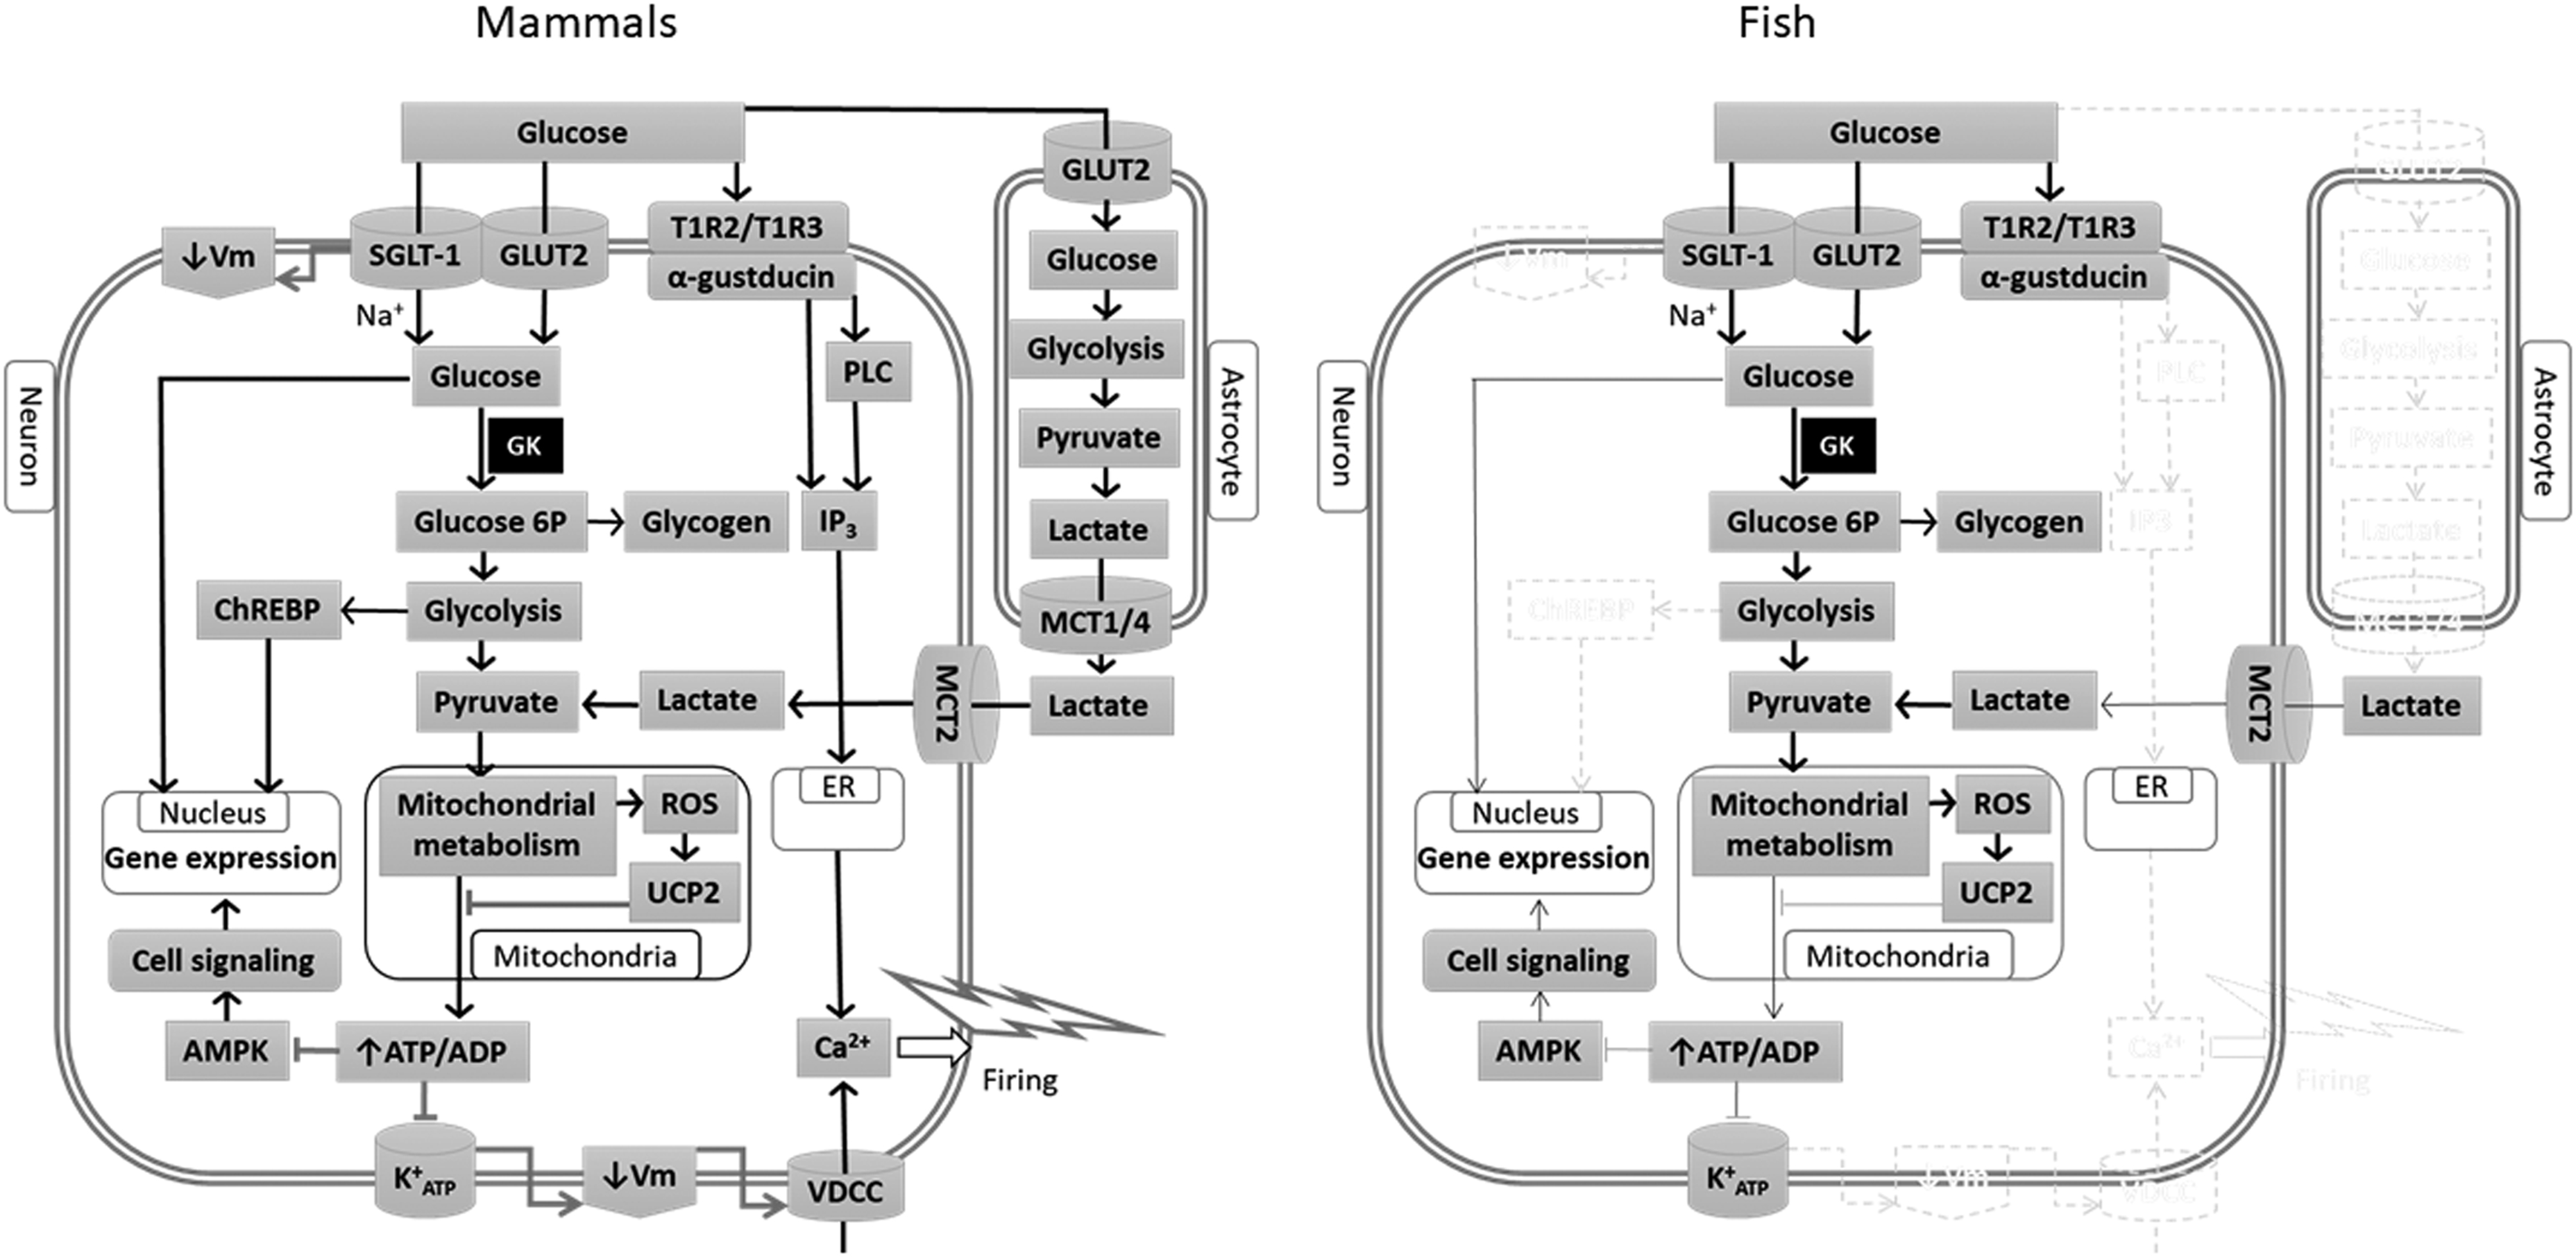 Central Regulation Of Food Intake In Fish An Evolutionary Including Their Appearance And The Symbol On Schematic Circuits View Gallery Drawing With